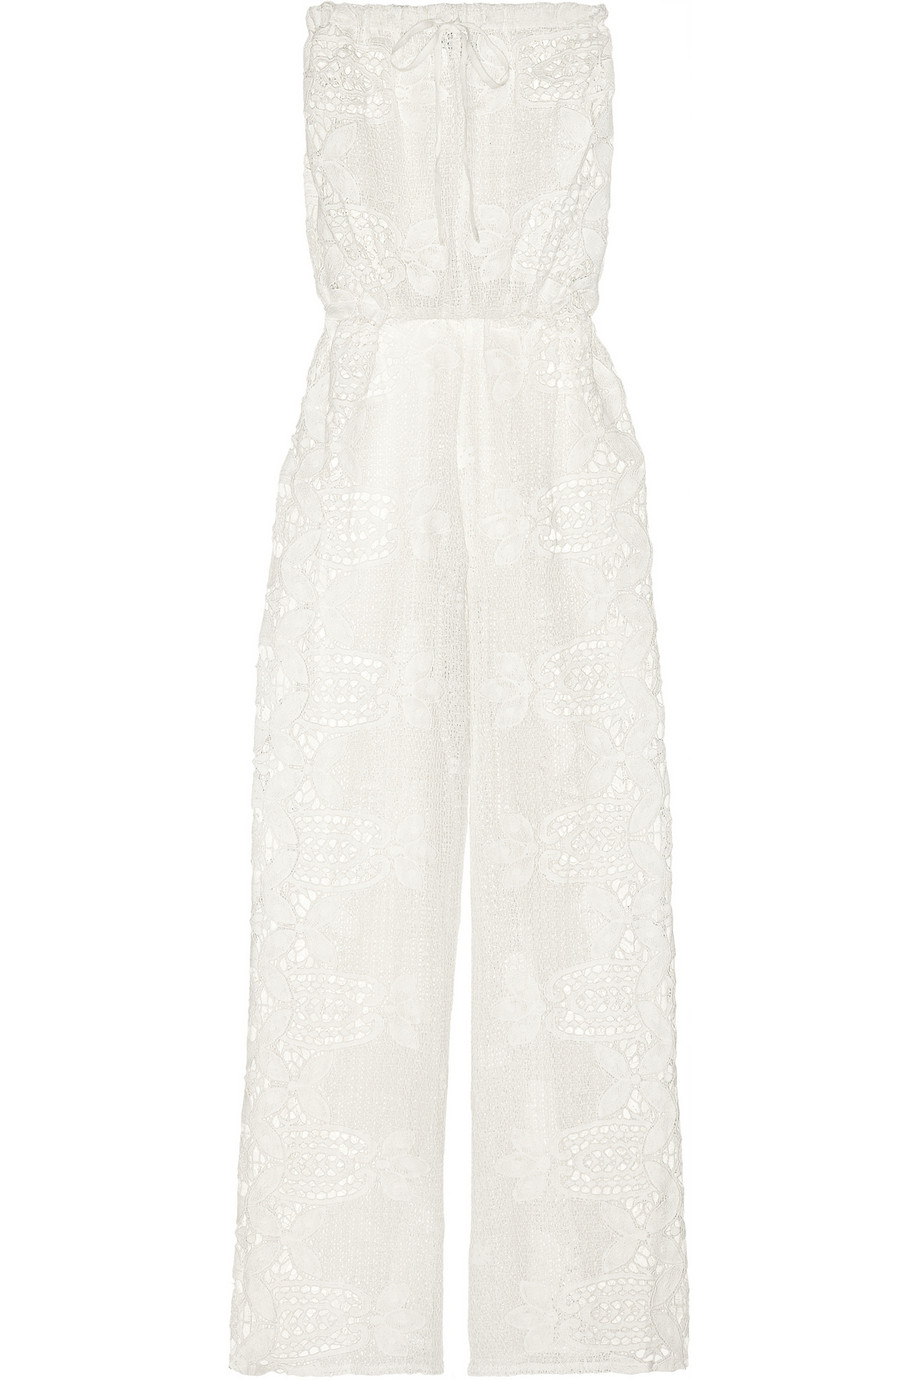 6381a4c22c31 Lyst - Miguelina Piper Crocheted Cotton-Lace Jumpsuit in White